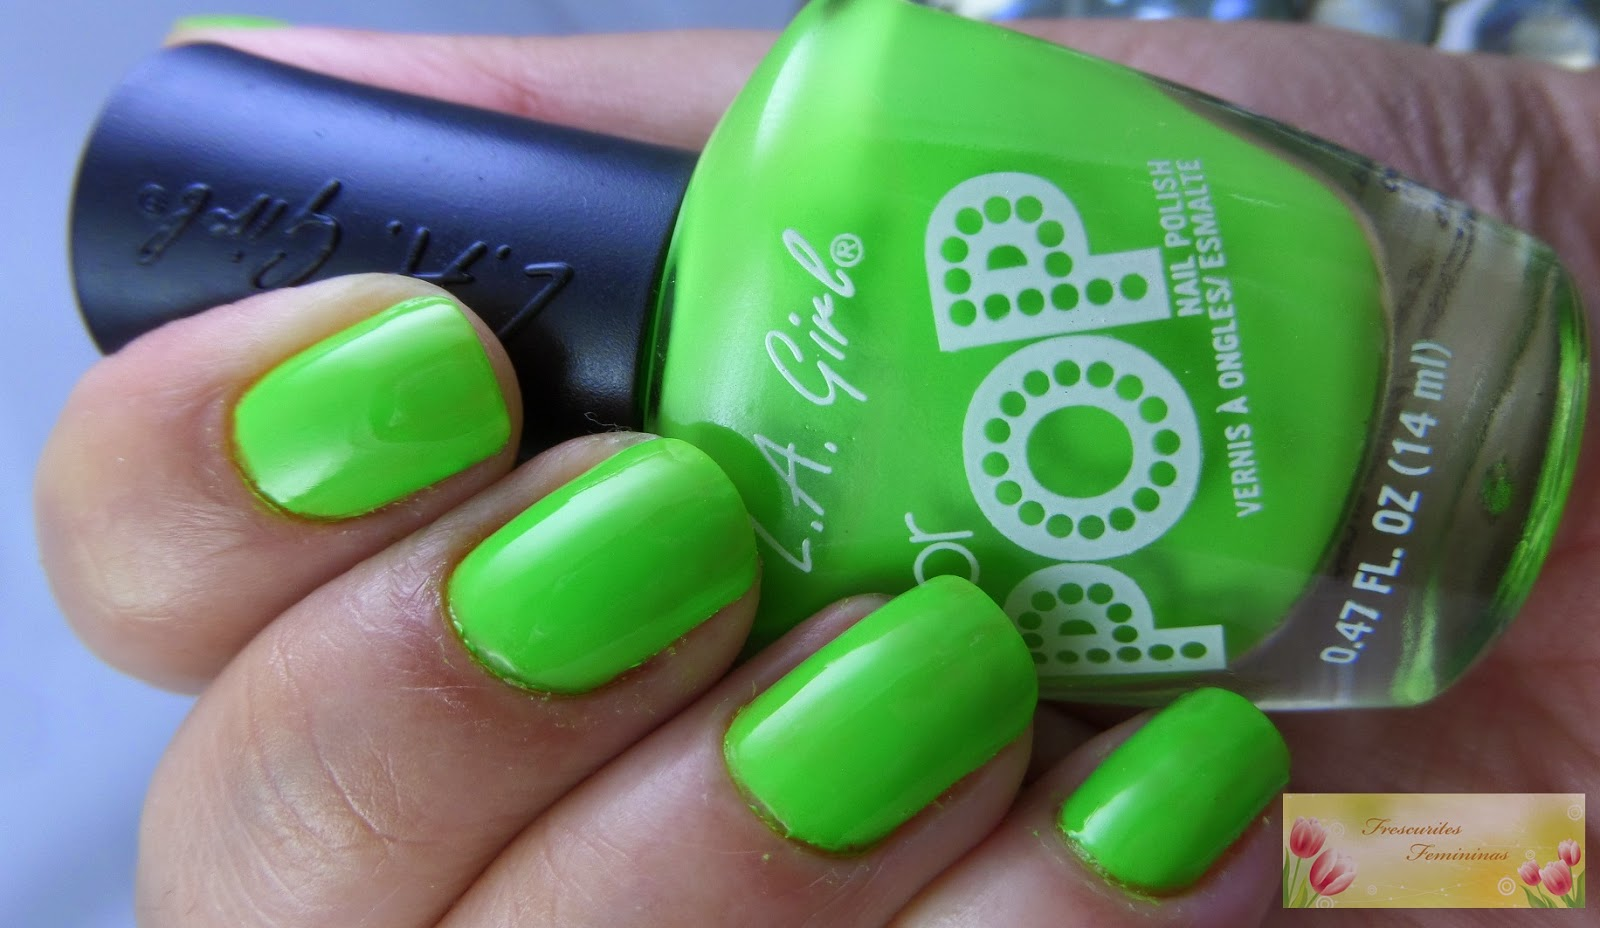 Frescurites Femininas, Green Nails, Color Pop